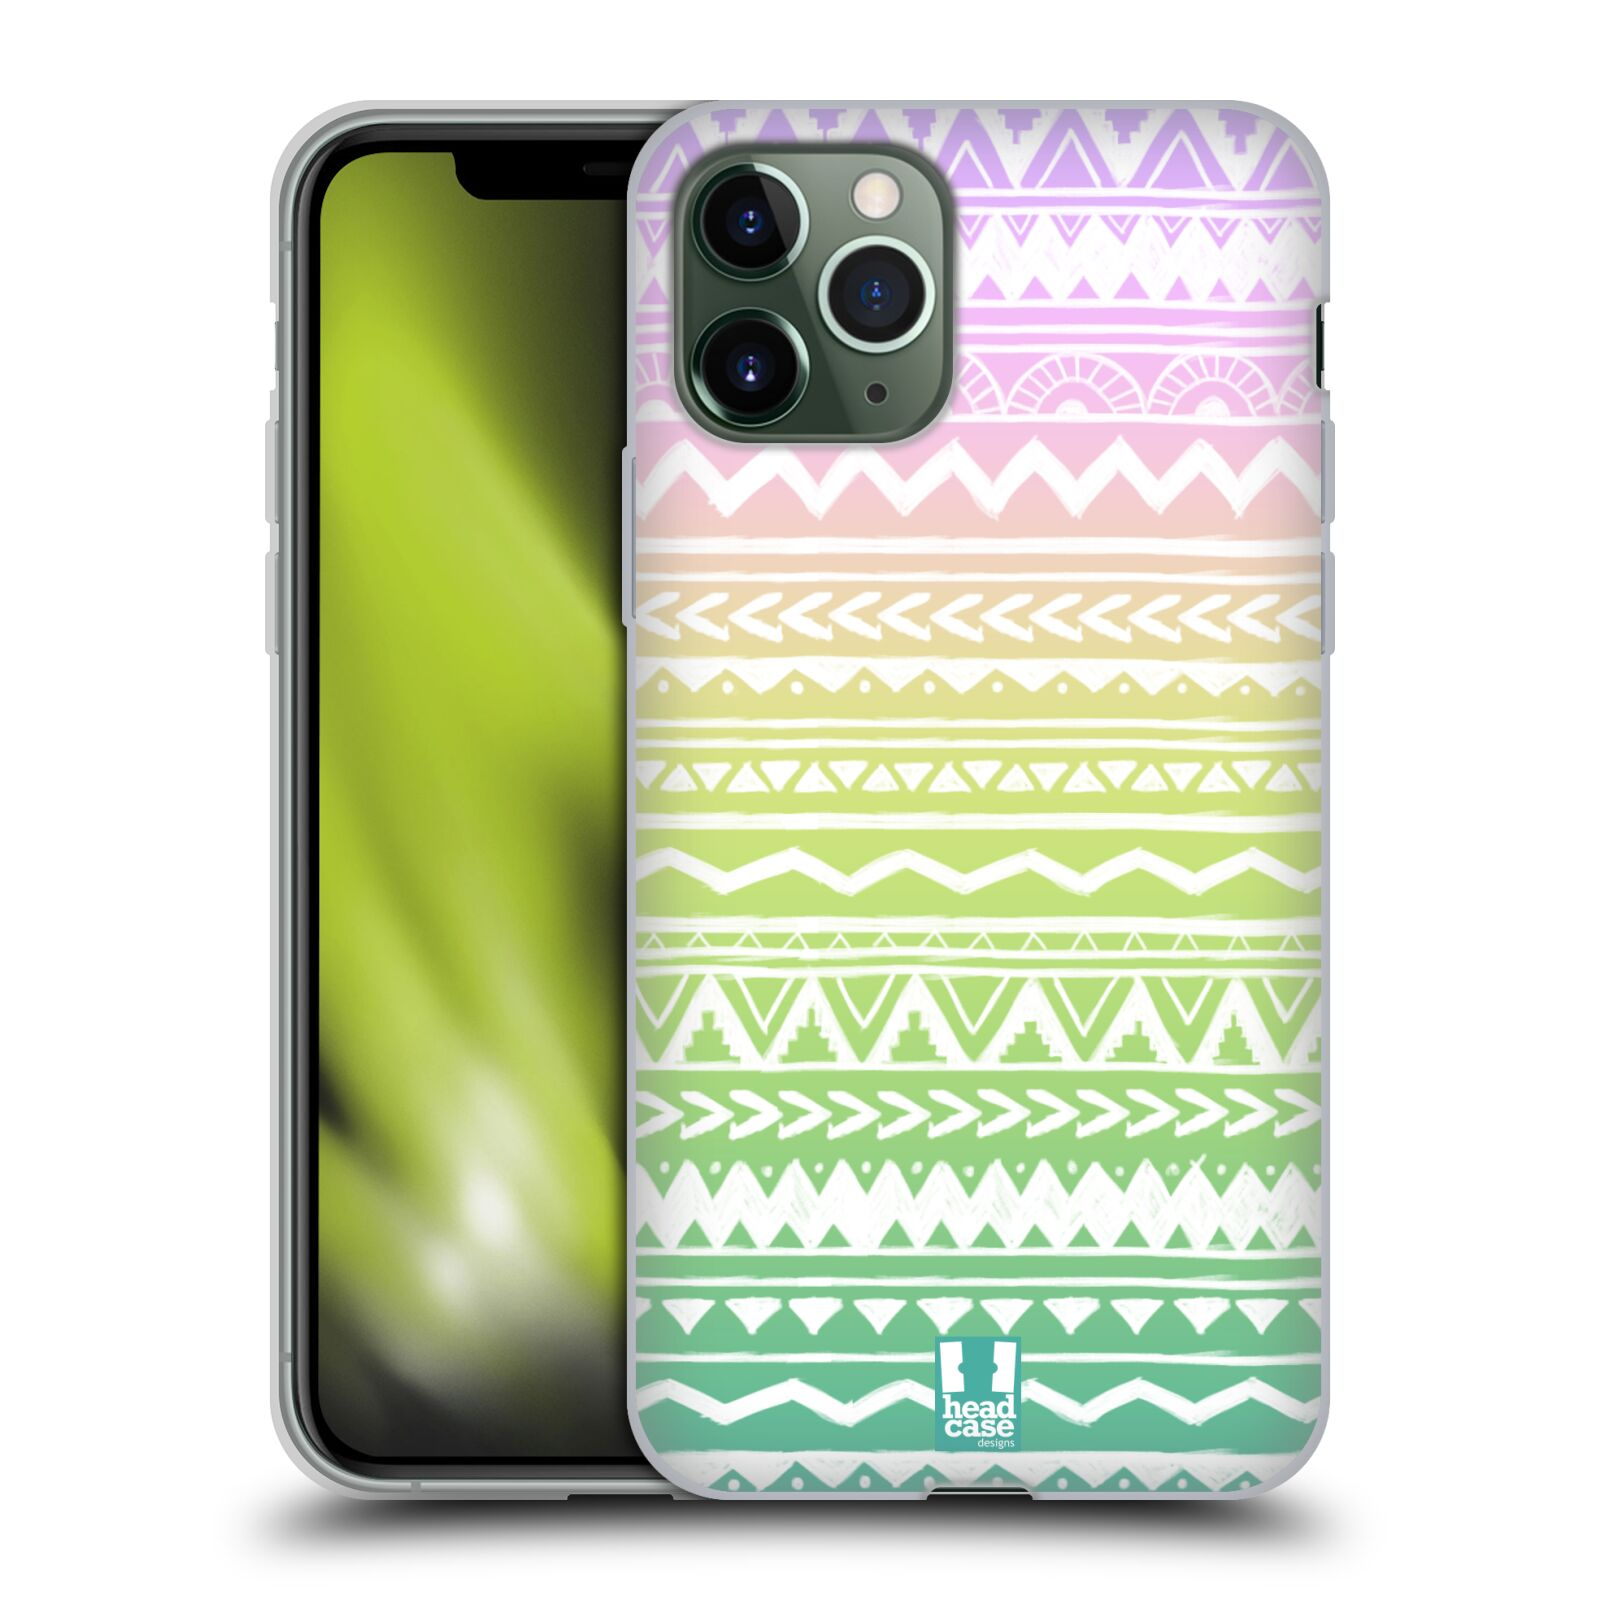 vodotesny krytu na iphone 6 plus , Silikonové pouzdro na mobil Apple iPhone 11 Pro - Head Case - MIX AZTEC DRAWN